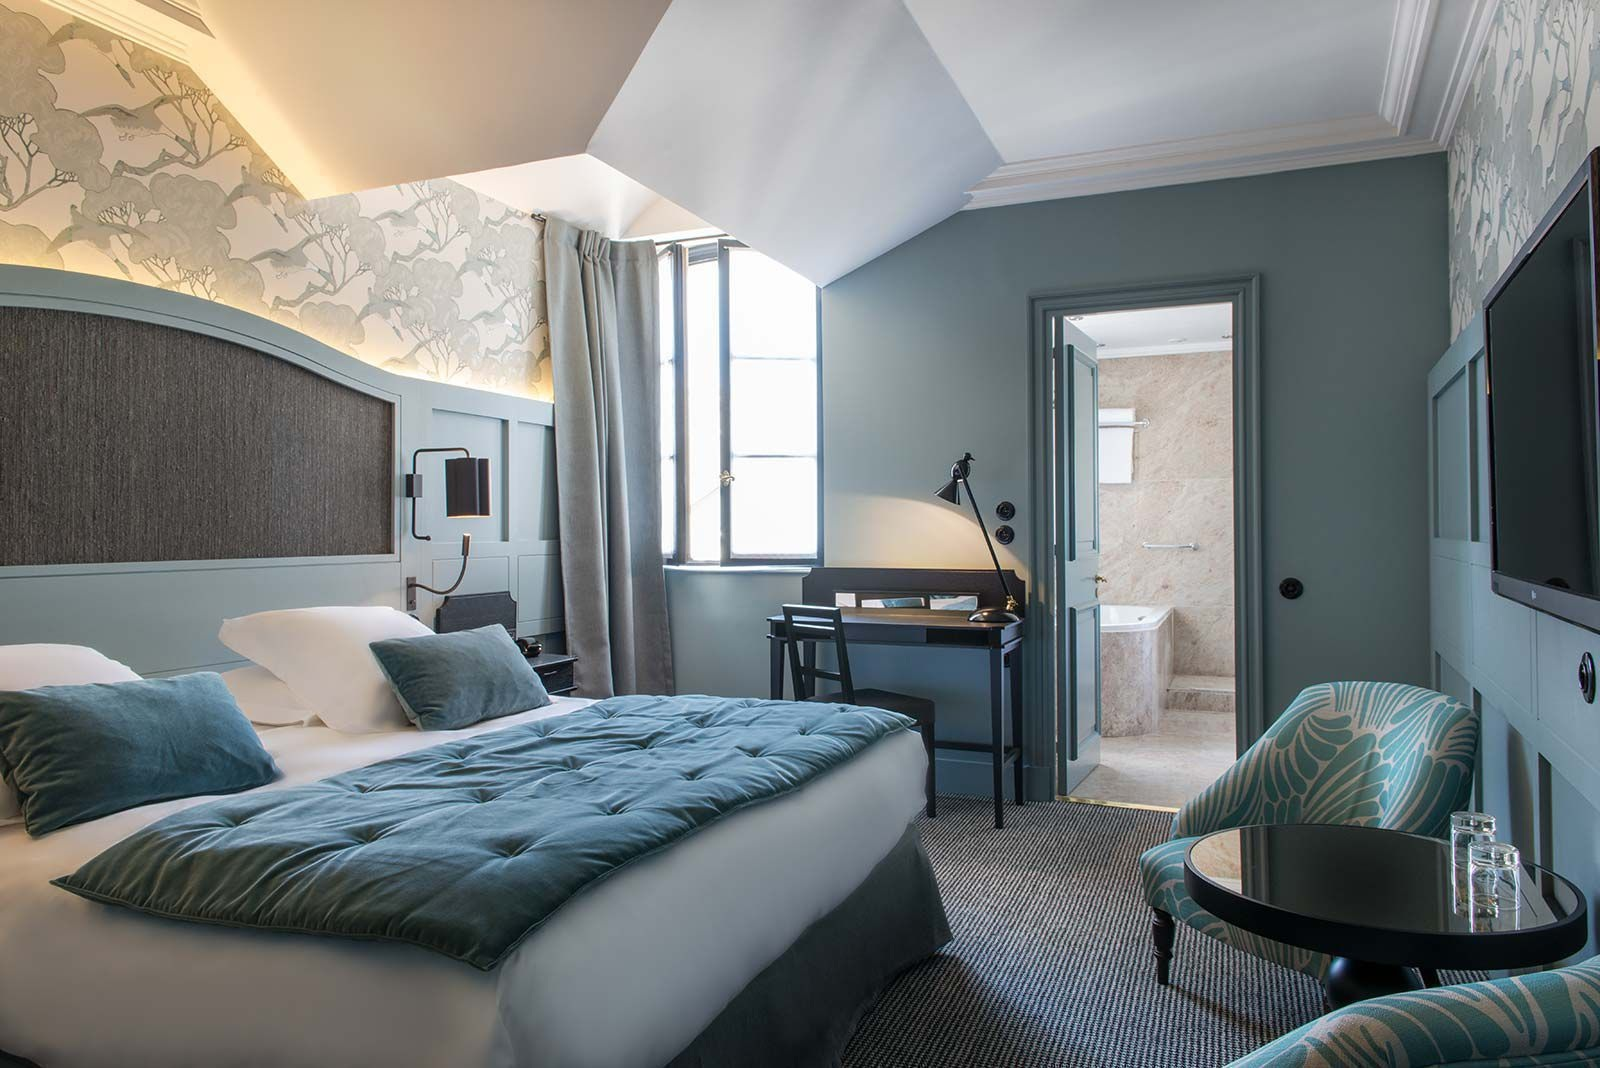 Hotel d'Aubusson - Hotel Room